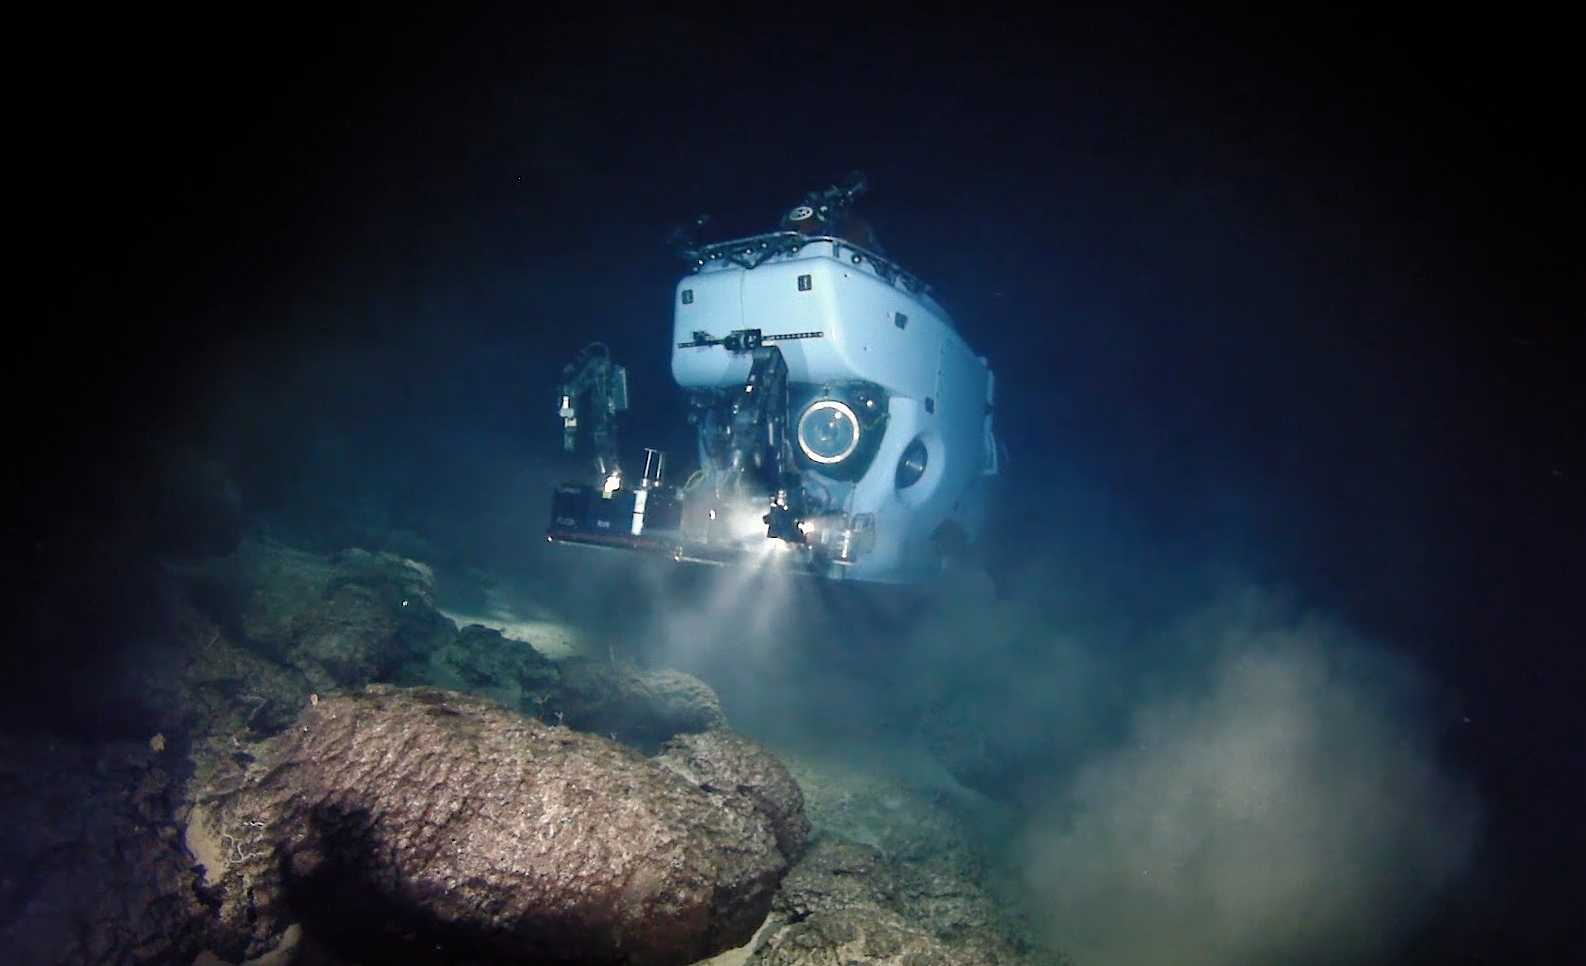 Photos and video taken from DSV Alvin using WHOI MISO Facility deep-sea camera systems and Alvin cameras.